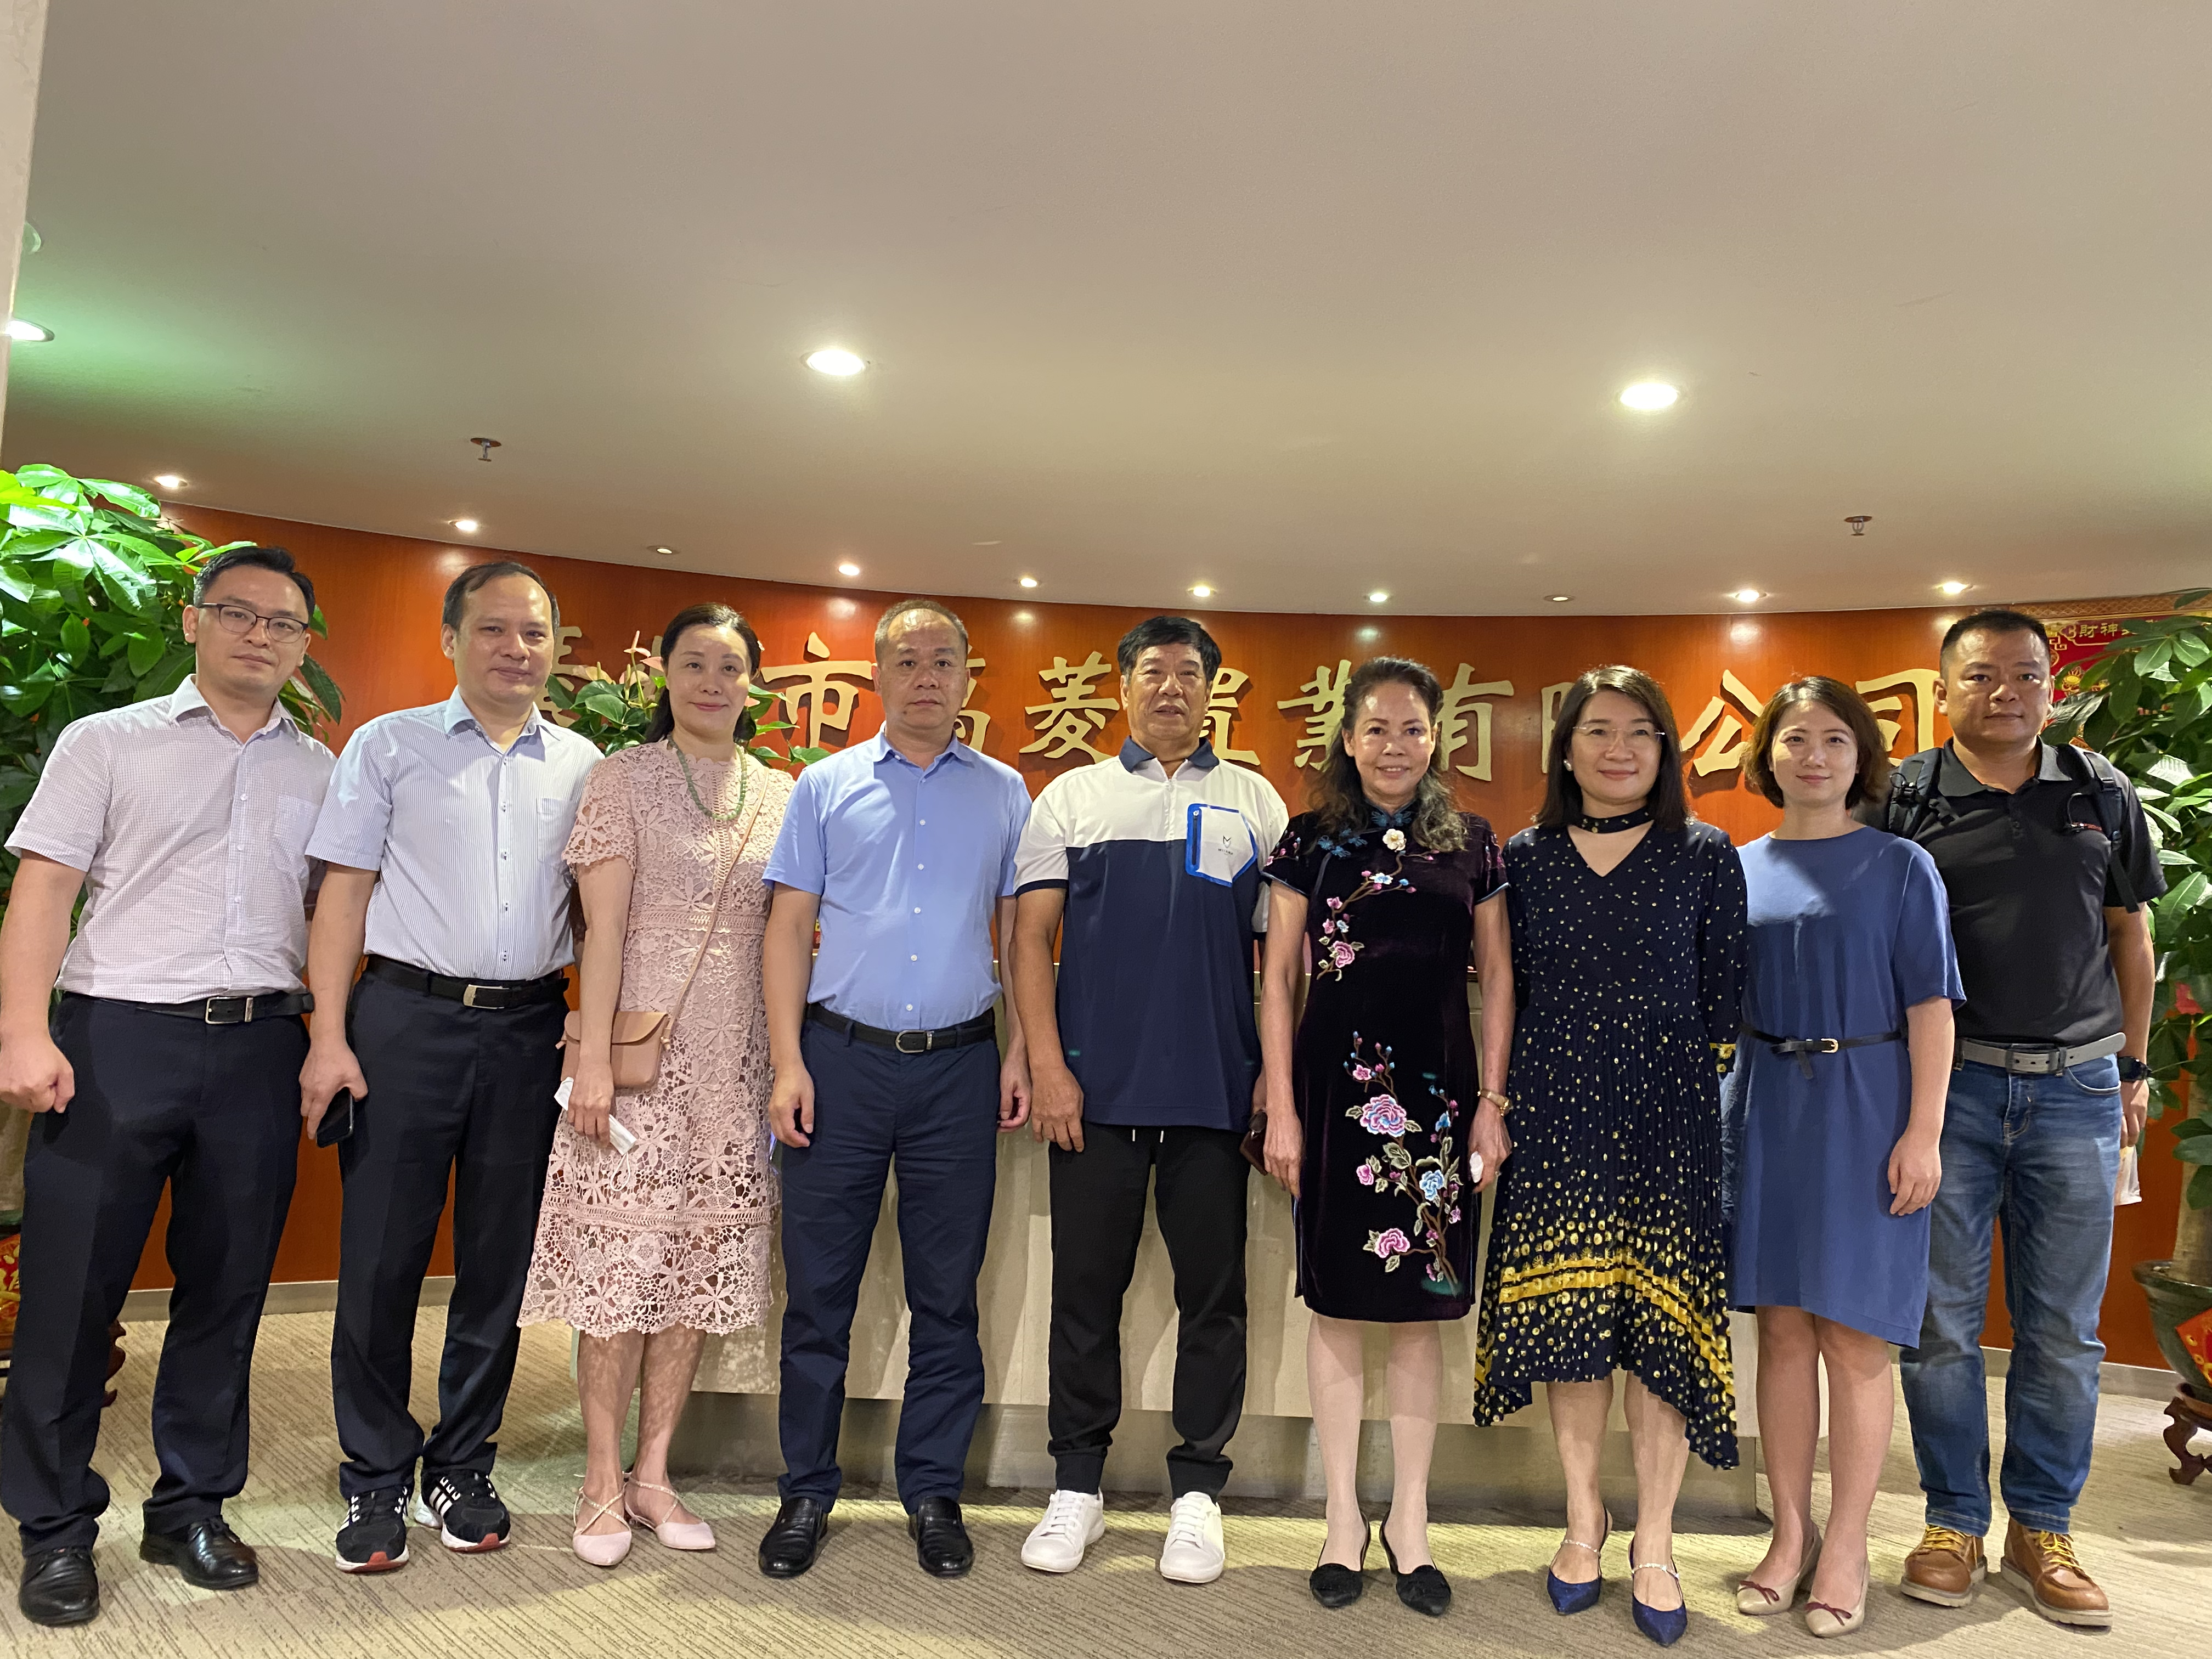 Guangzhou professional marketing chamber of Commerce visited Wanling square